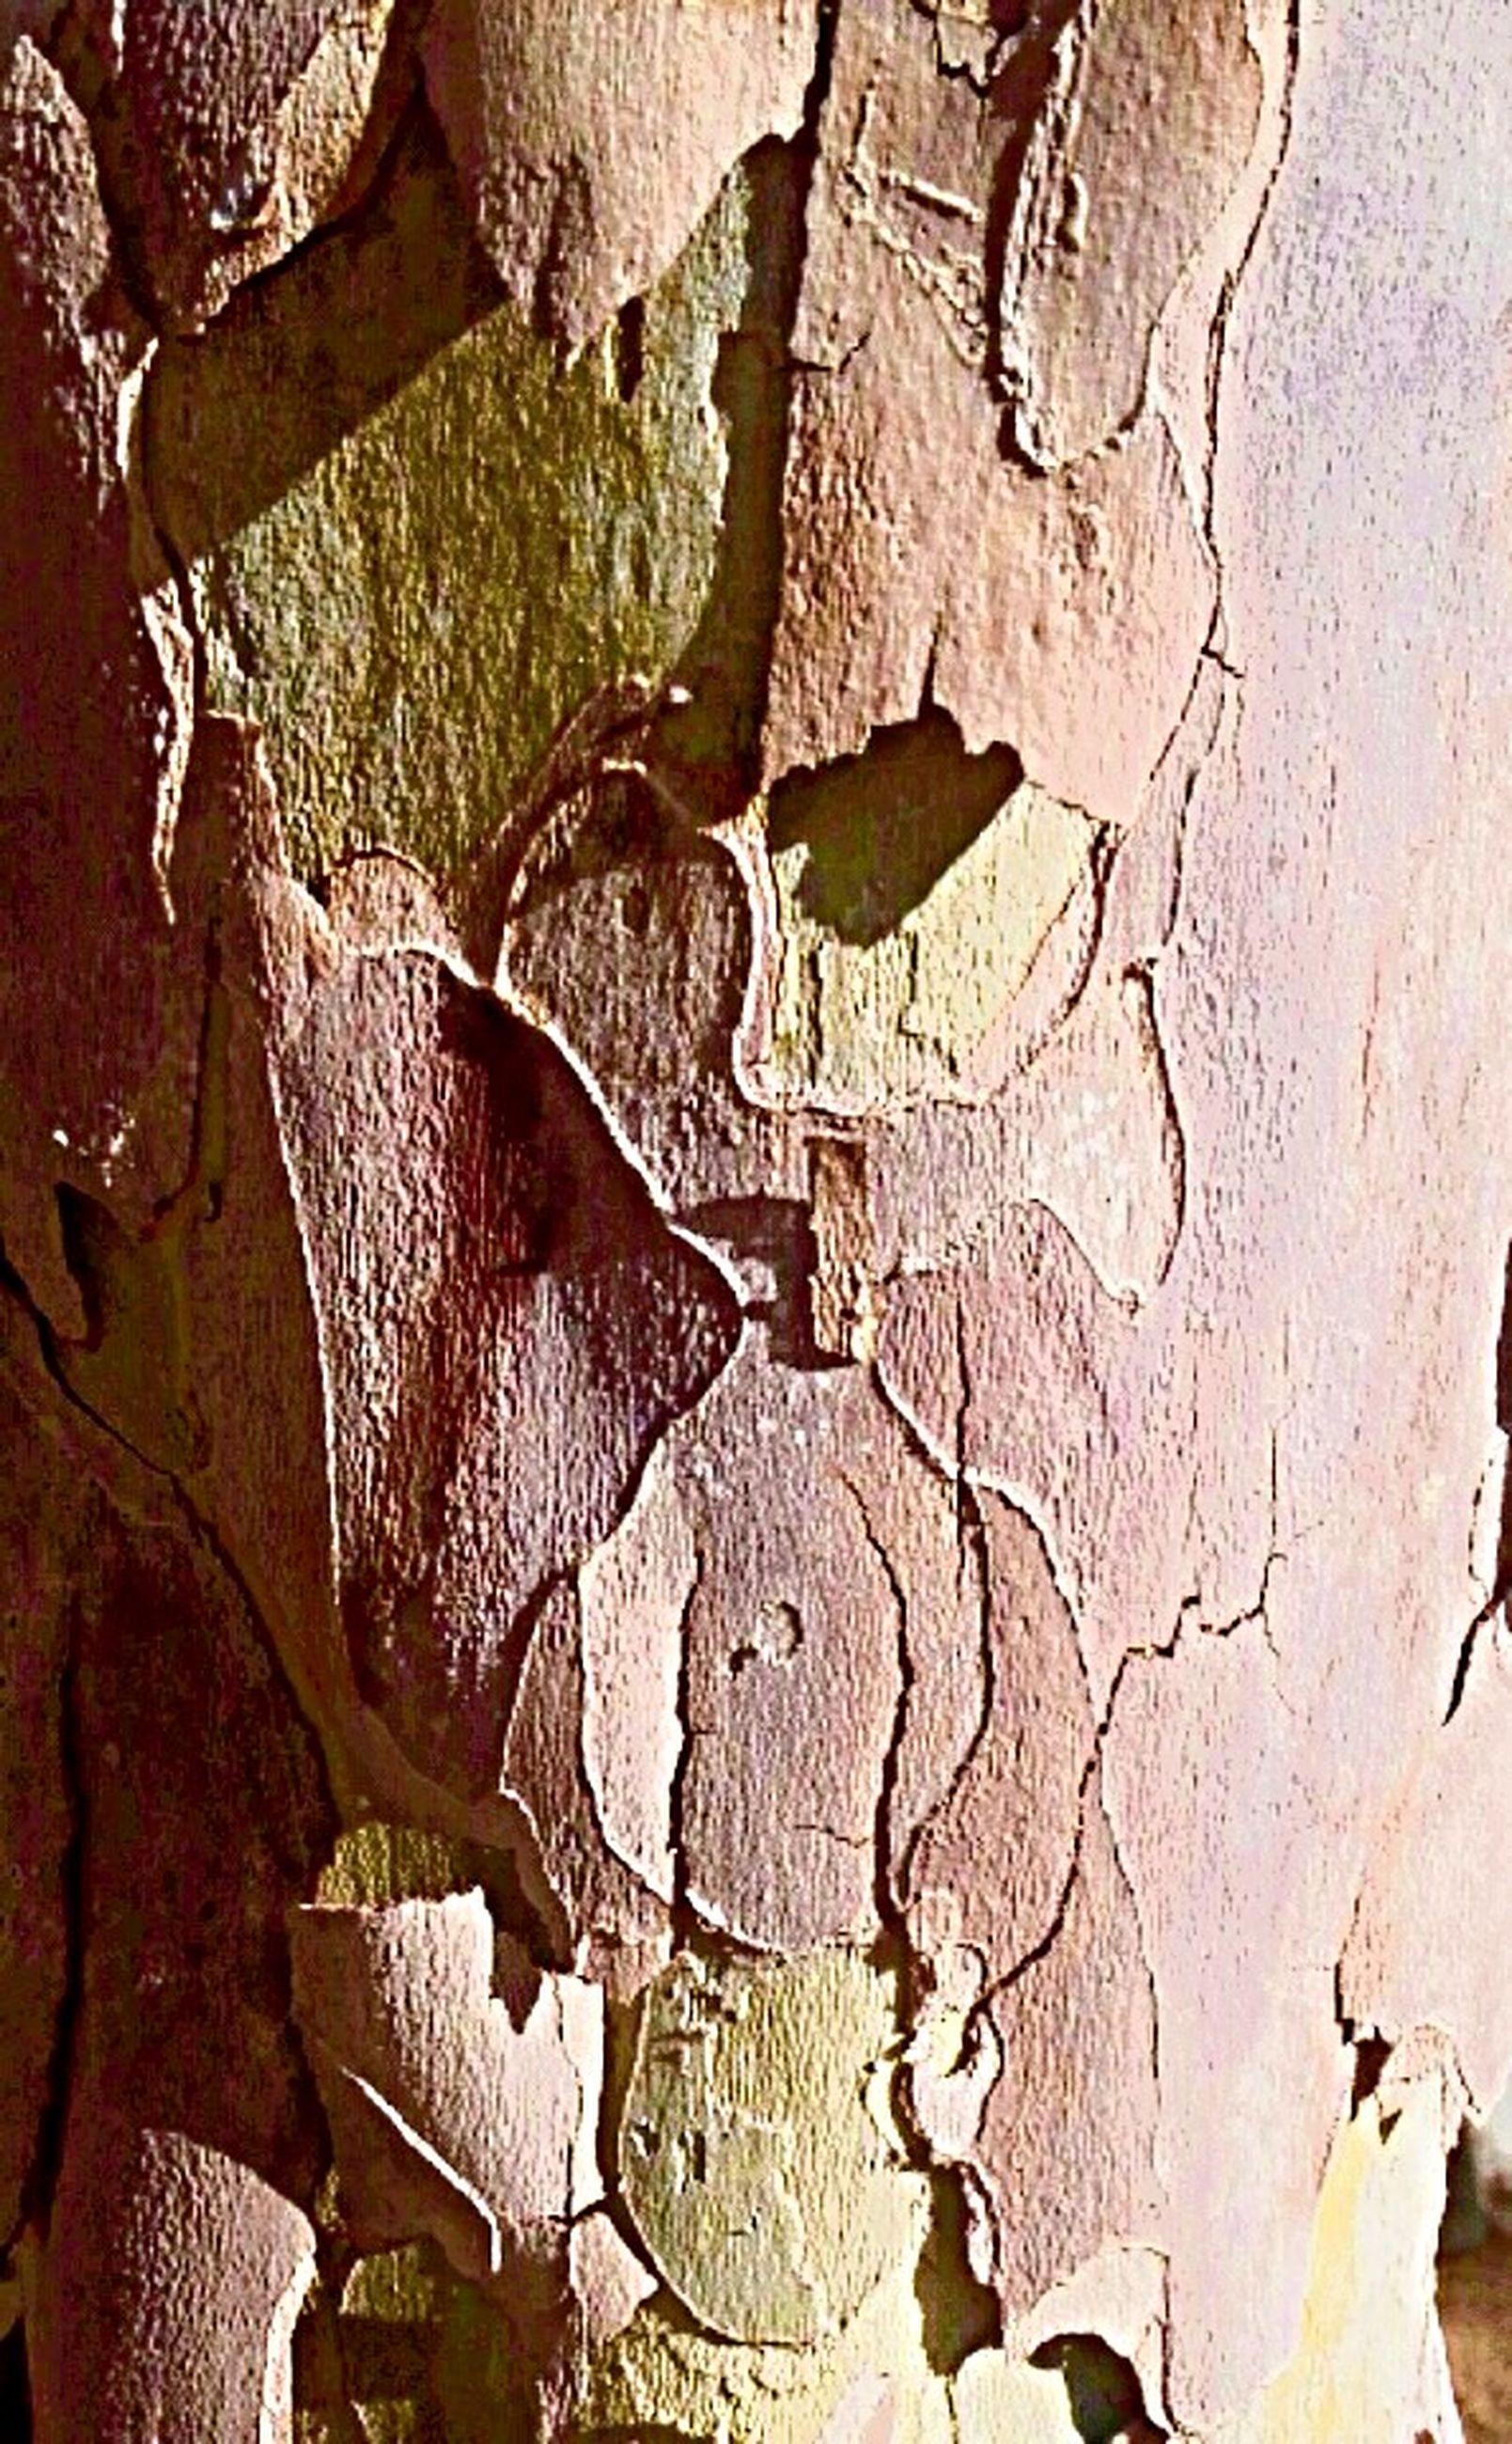 animal themes, animals in the wild, one animal, wildlife, wall - building feature, sunlight, outdoors, bird, high angle view, day, textured, wall, shadow, tree trunk, nature, close-up, no people, built structure, pattern, architecture